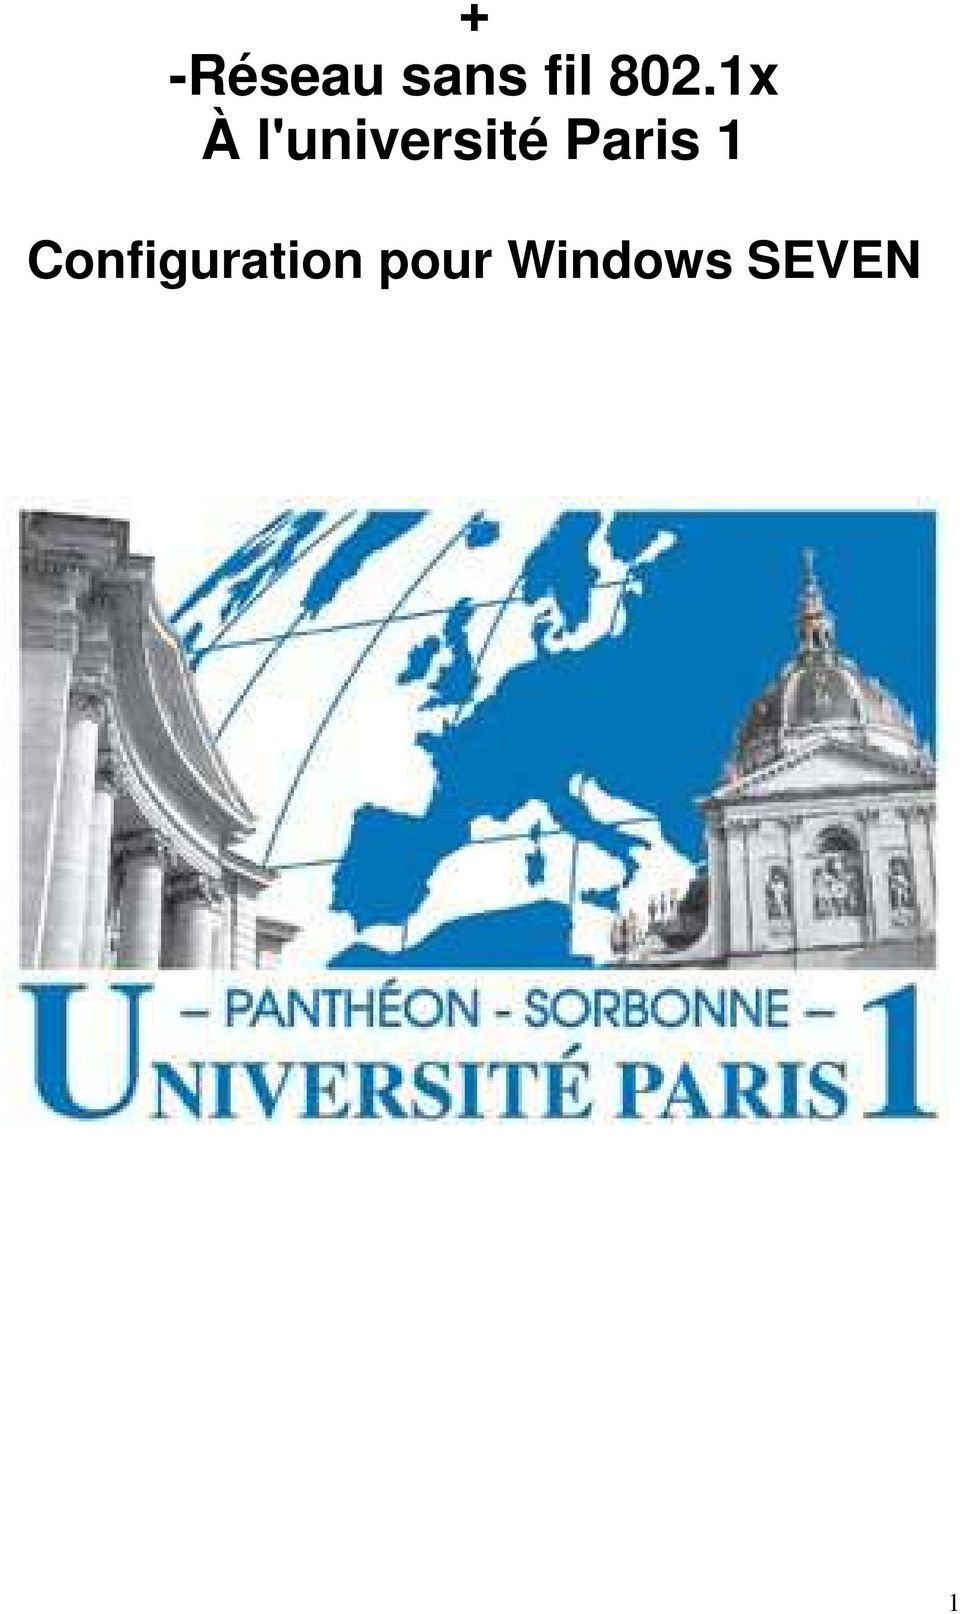 l'université Paris 1